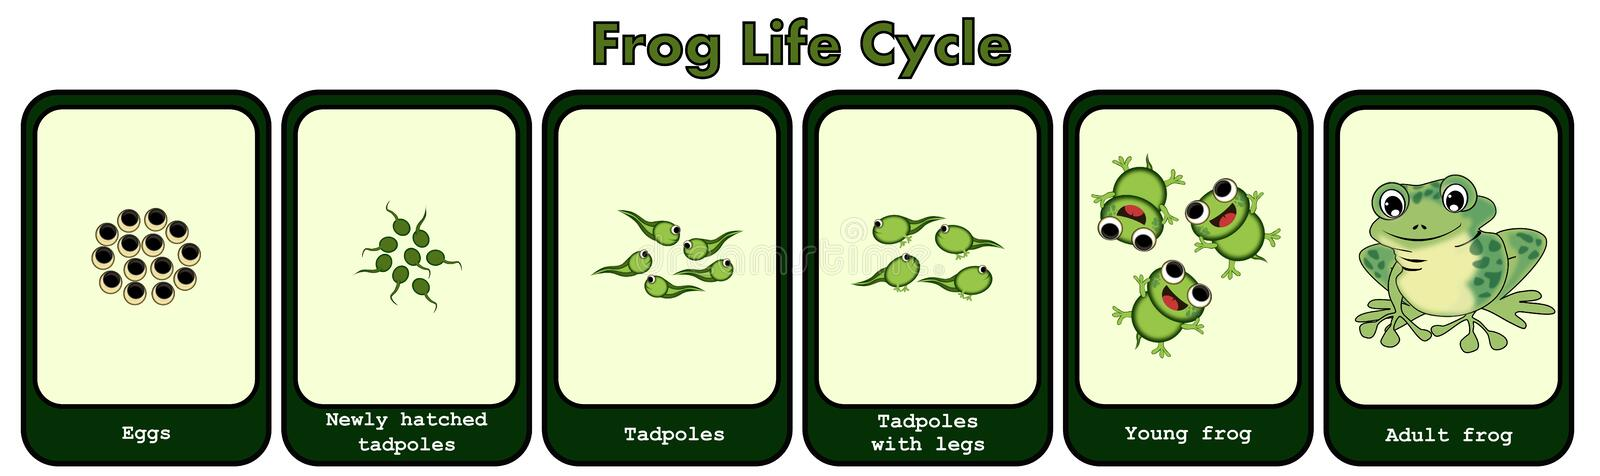 Frog Life Cycle Concept. Frog life cycle isolated illustrations concept. Description of life cycle from eggs, tadpoles, tadpoles with legs, young frog to adult royalty free illustration